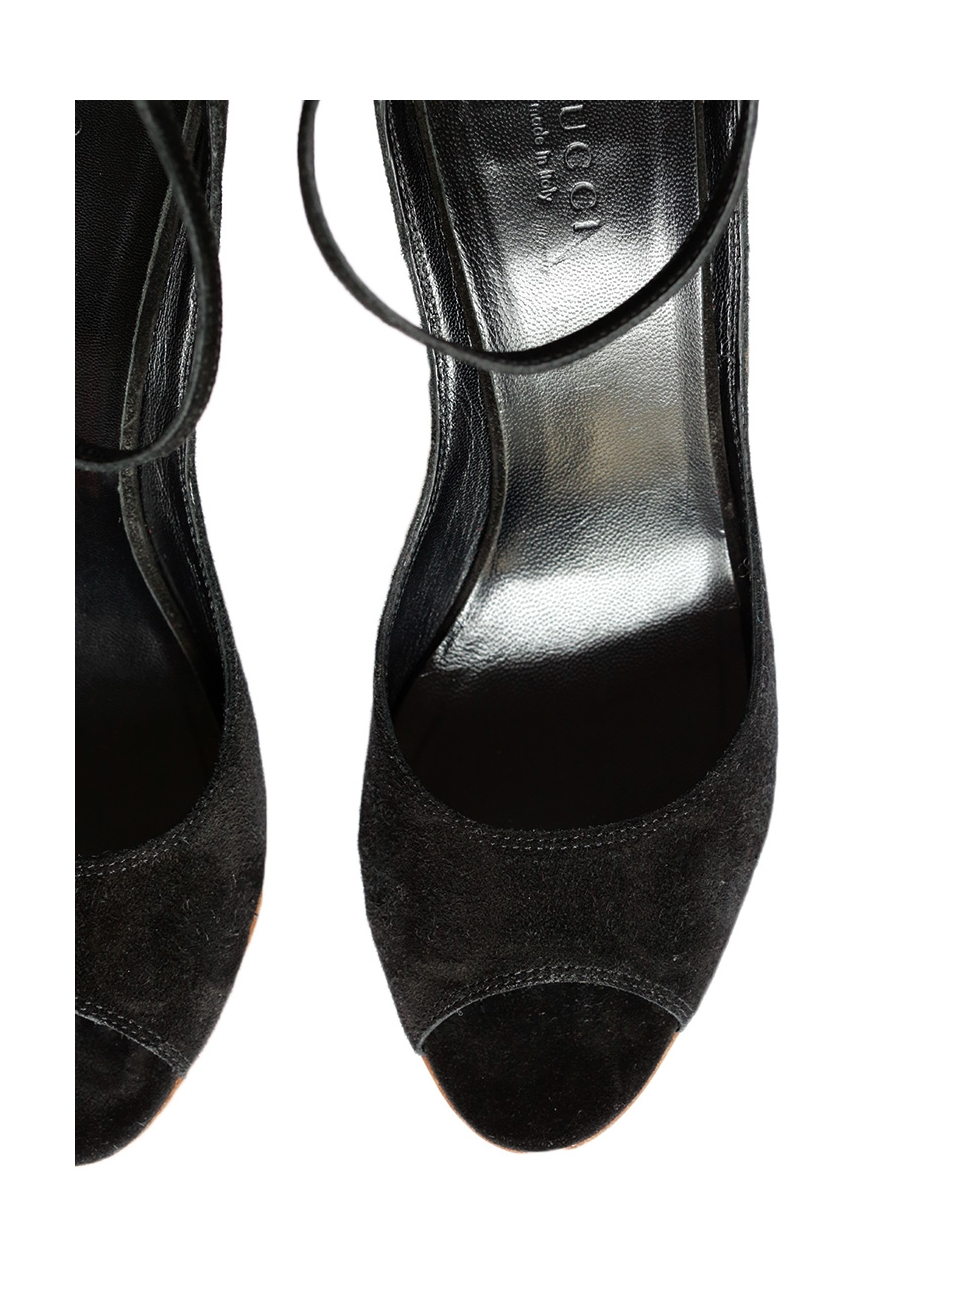 0f62c8055727 Louise Paris - GUCCI Black suede and bamboo wedge sandals Retail price €500  Size 37